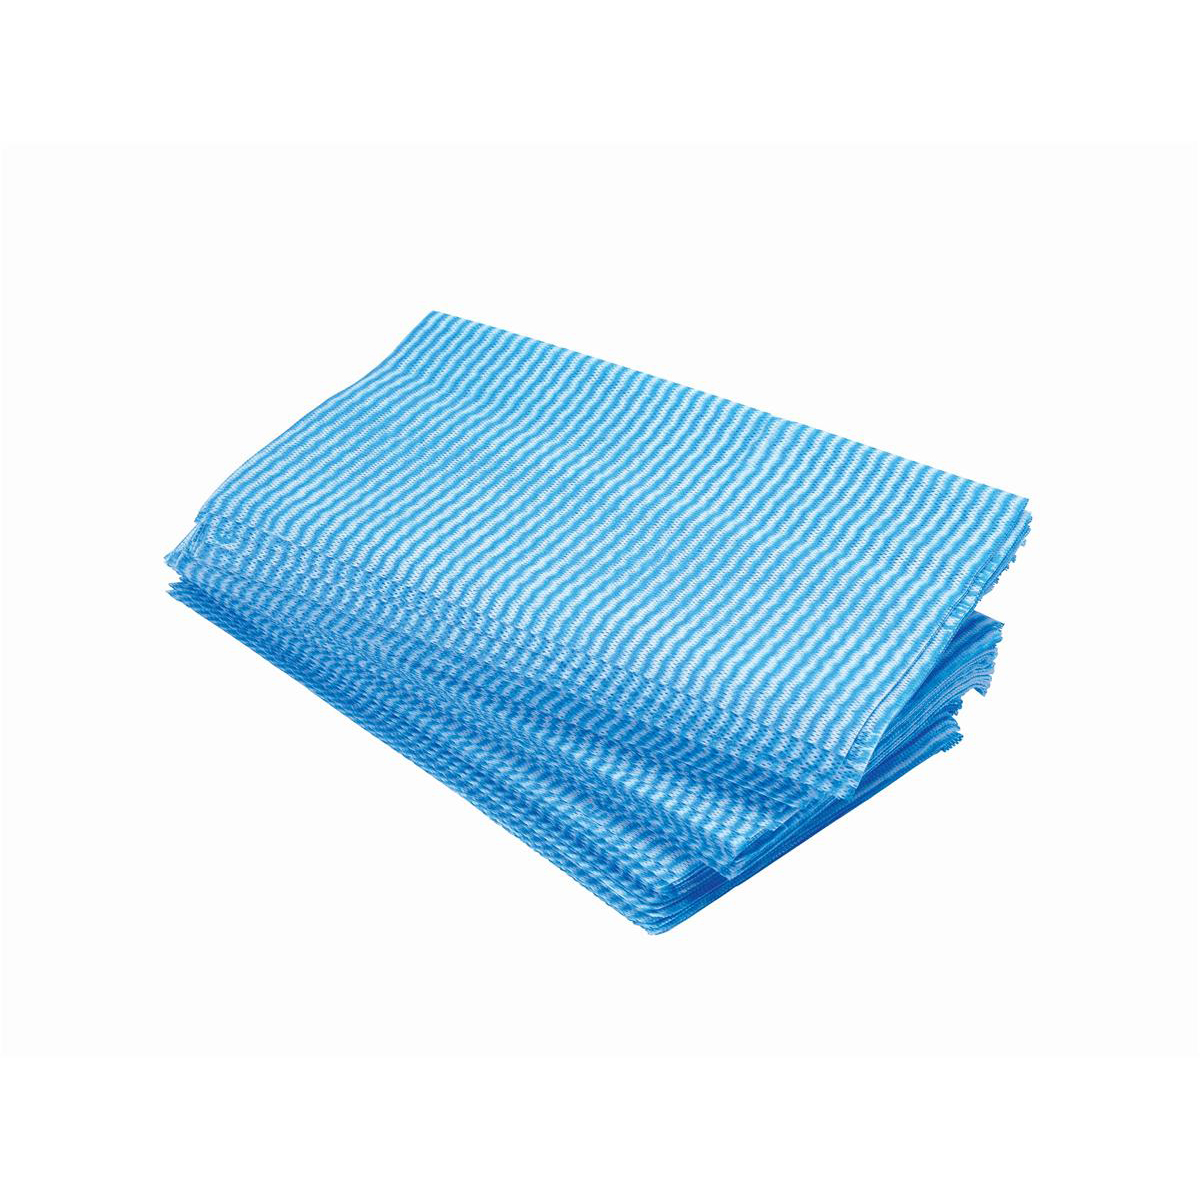 Cloths / Dusters / Scourers / Sponges 5 Star Facilities Large All Purpose cloths 610x360mm Blue Pack 50